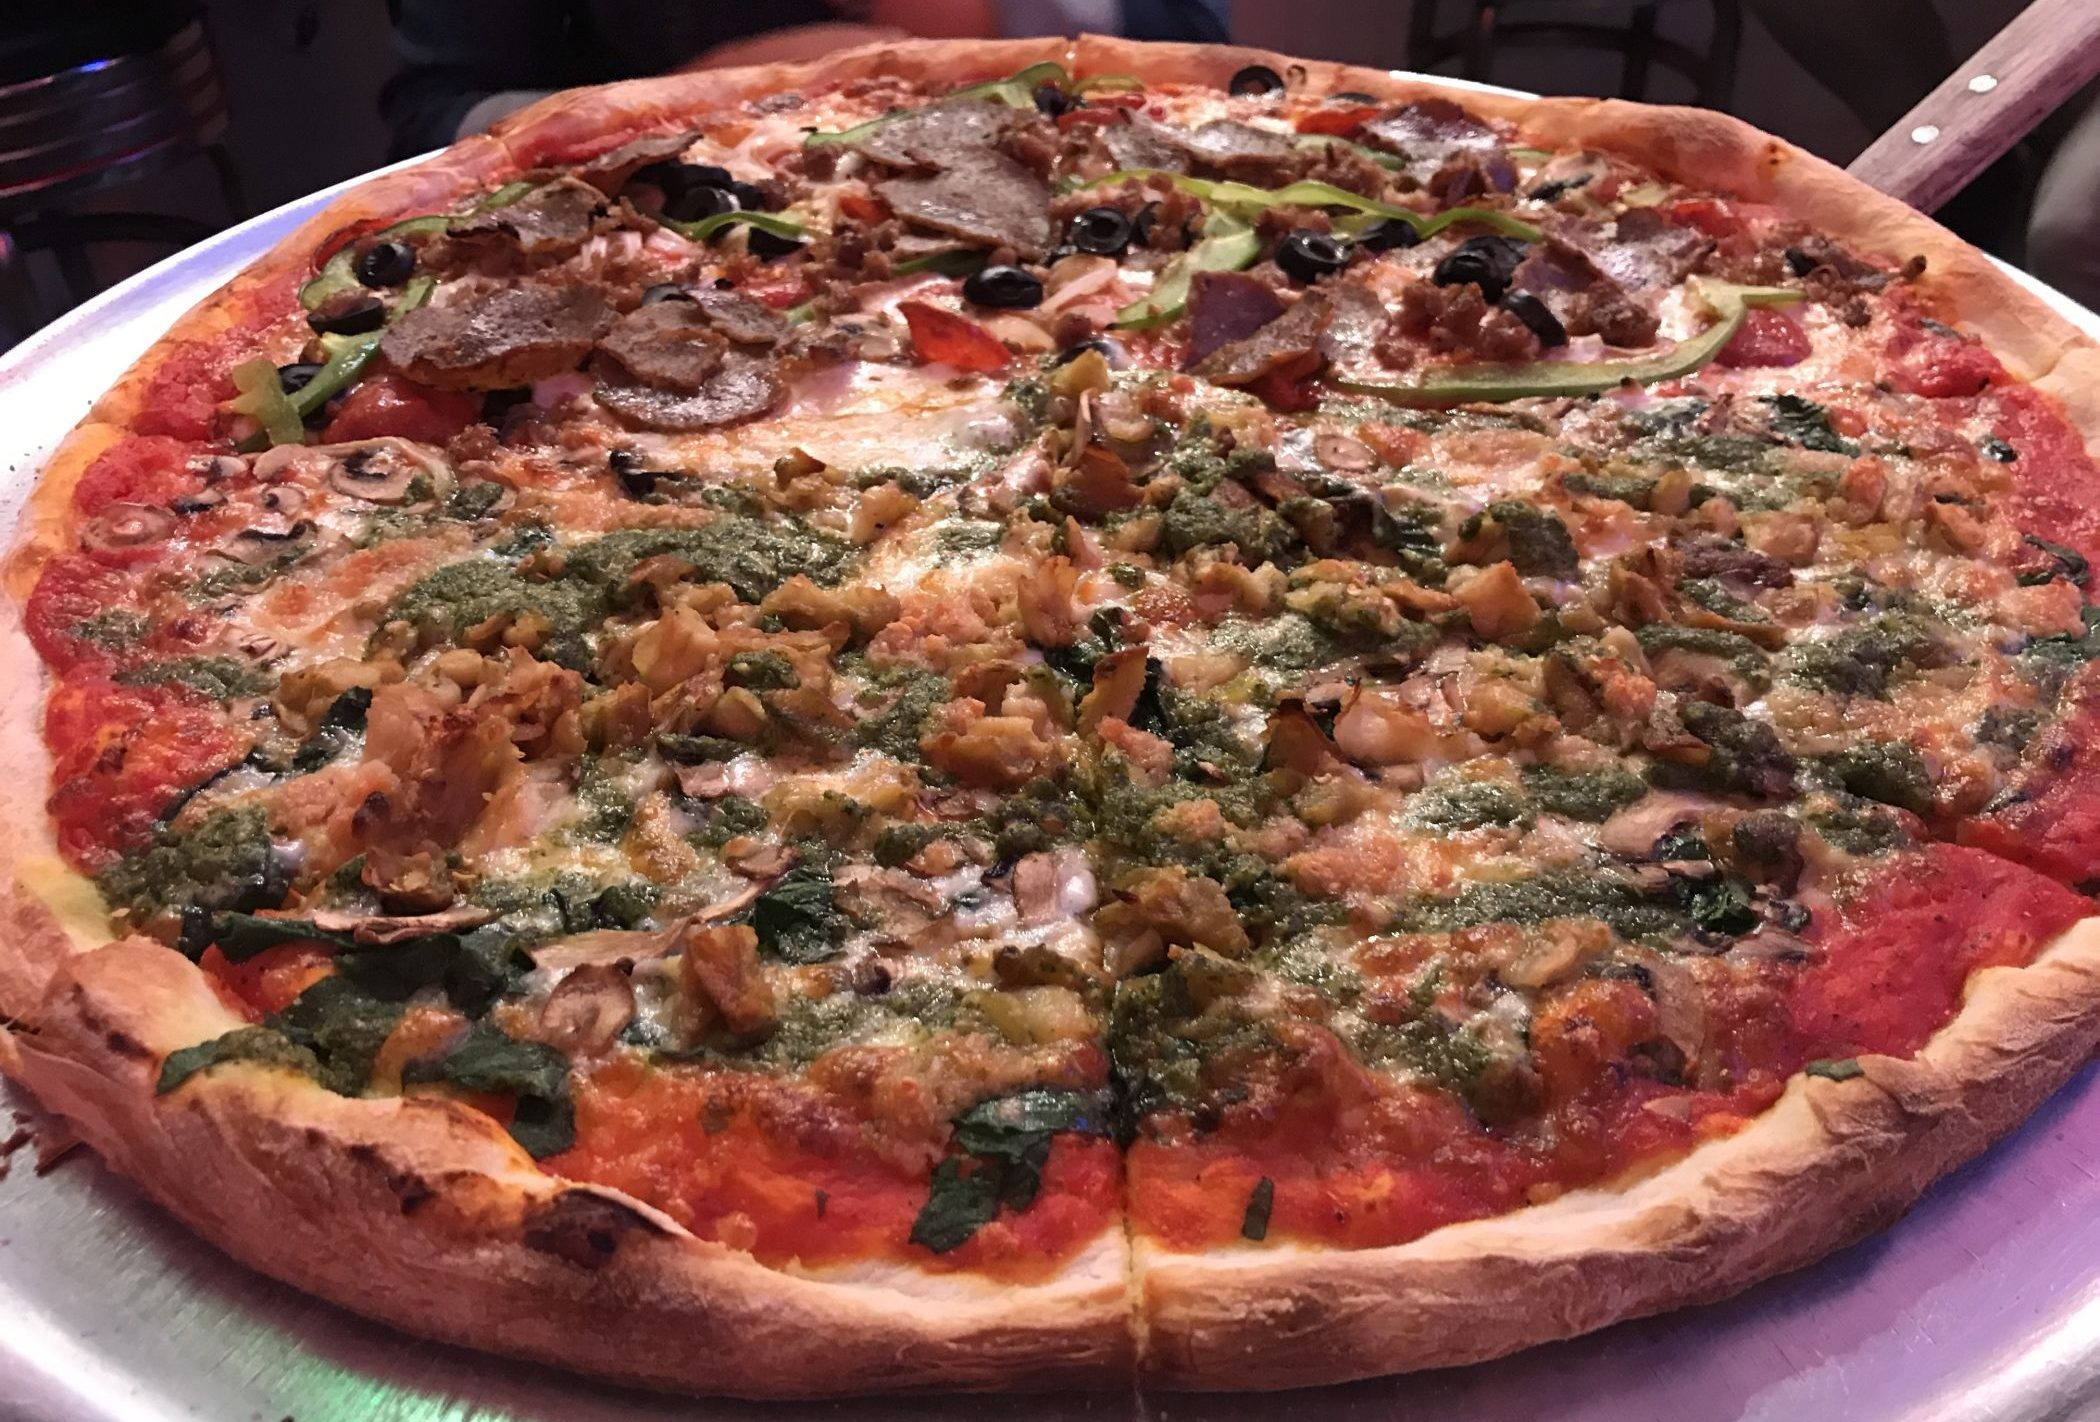 Pizza from Village Pizza in Larchmont Village